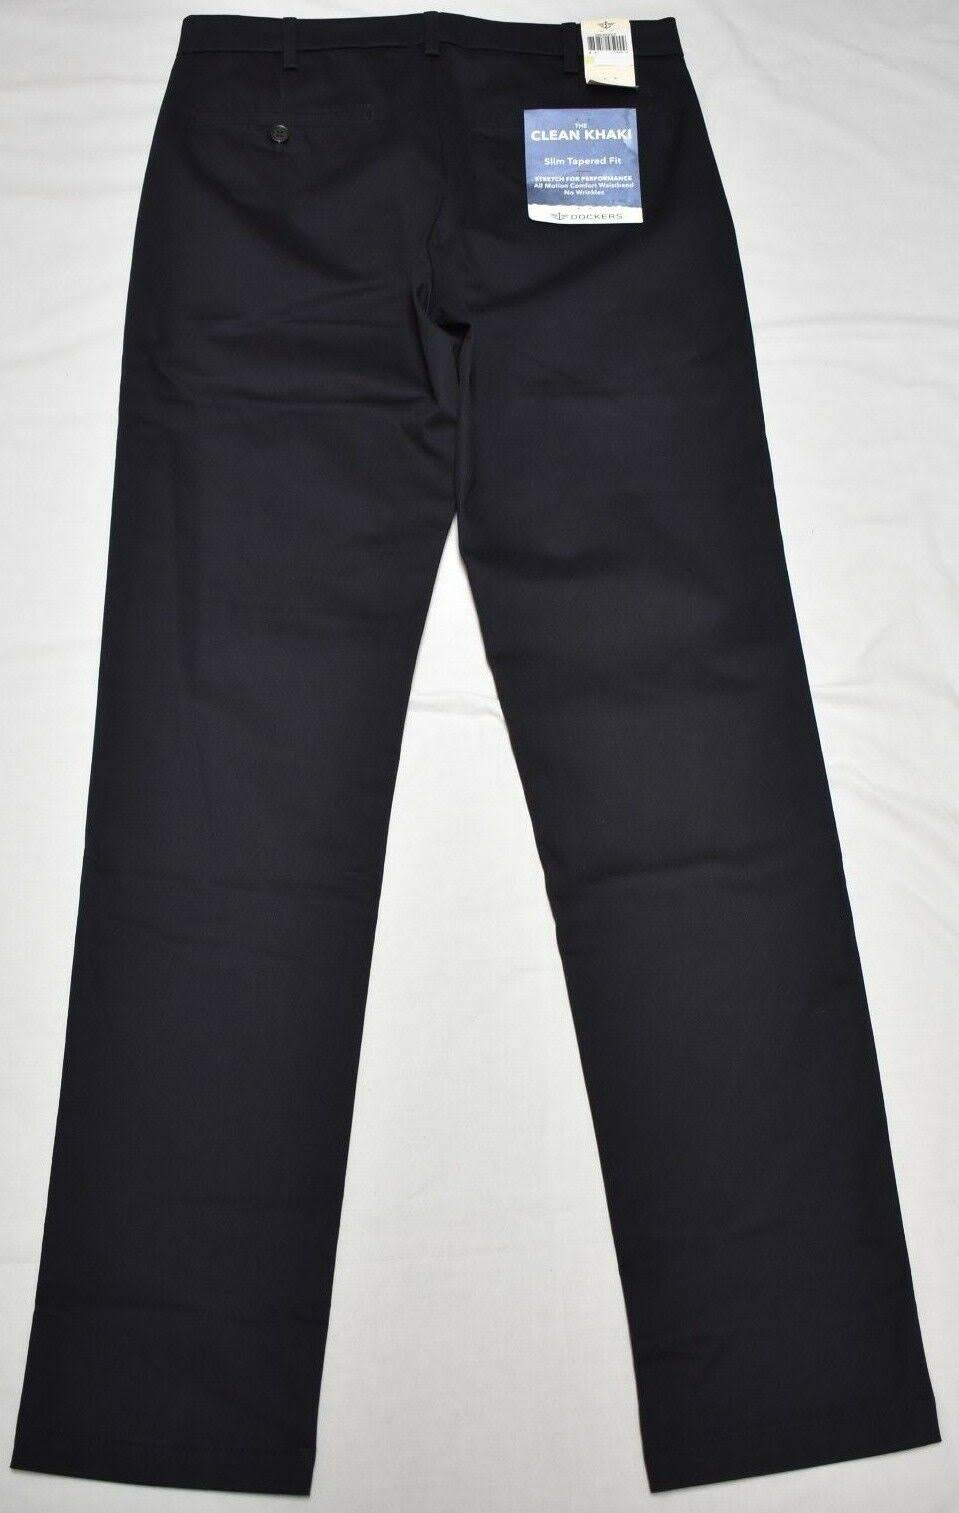 Hombres Fit 28x28 Khaki Twill Stretch Navy Tapered Pantalones Slim P299 Clean Dockers Para a8wnEBqE